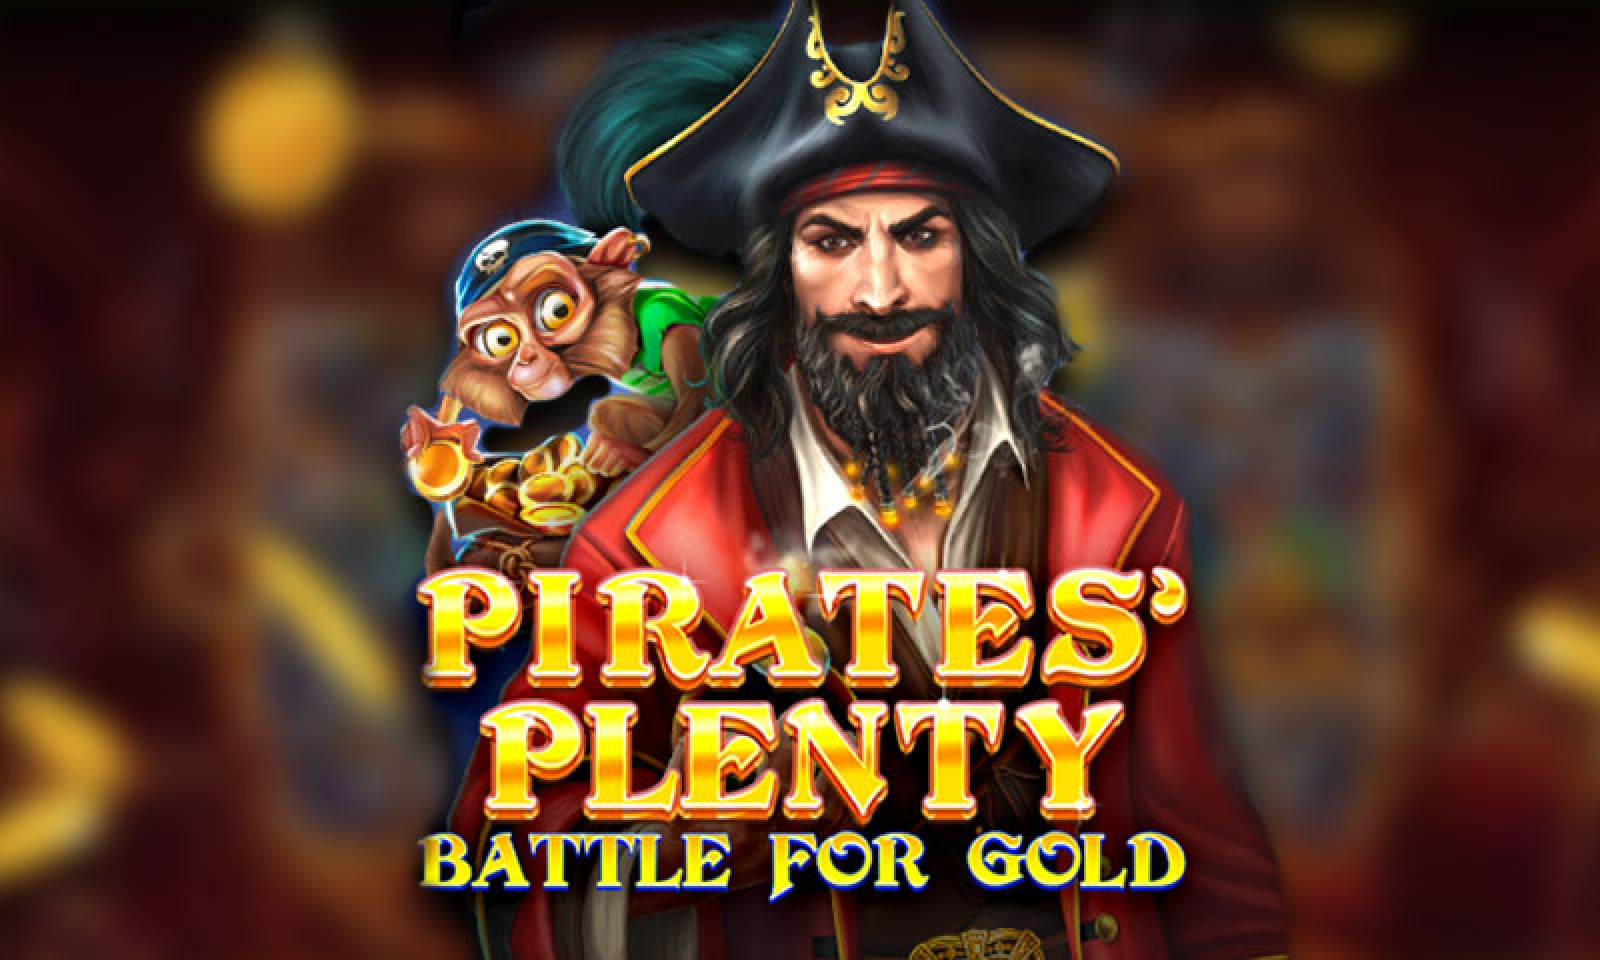 The Pirates Plenty Battle for Gold Online Slot Demo Game by Red Tiger Gaming